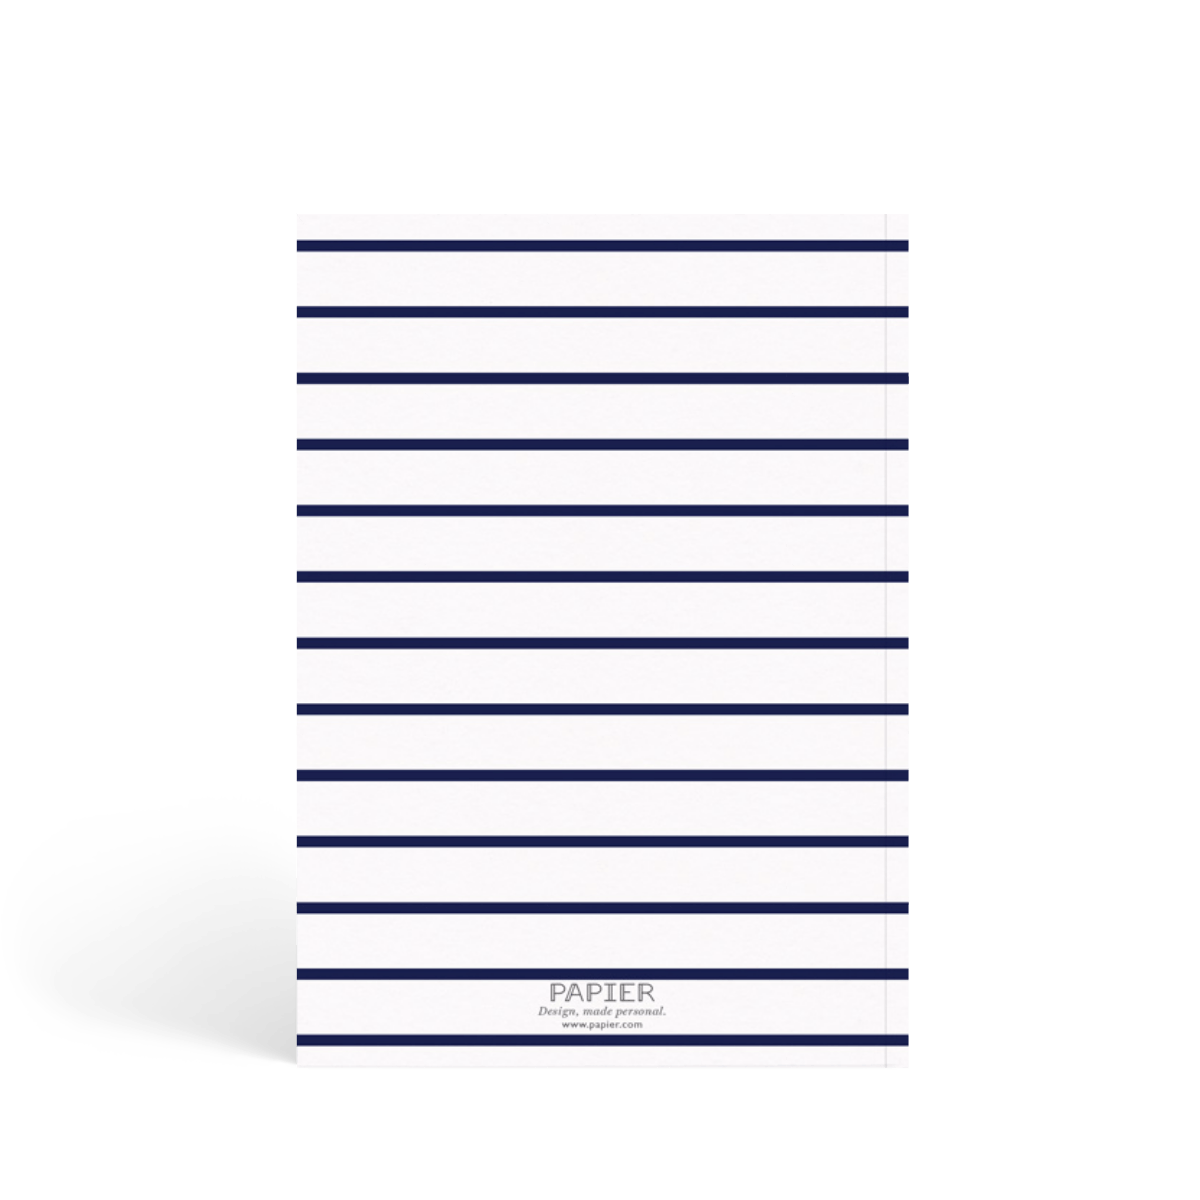 Https%3a%2f%2fwww.papier.com%2fproduct image%2f6955%2f5%2fthin stripe 1691 arriere 1461857223.png?ixlib=rb 1.1